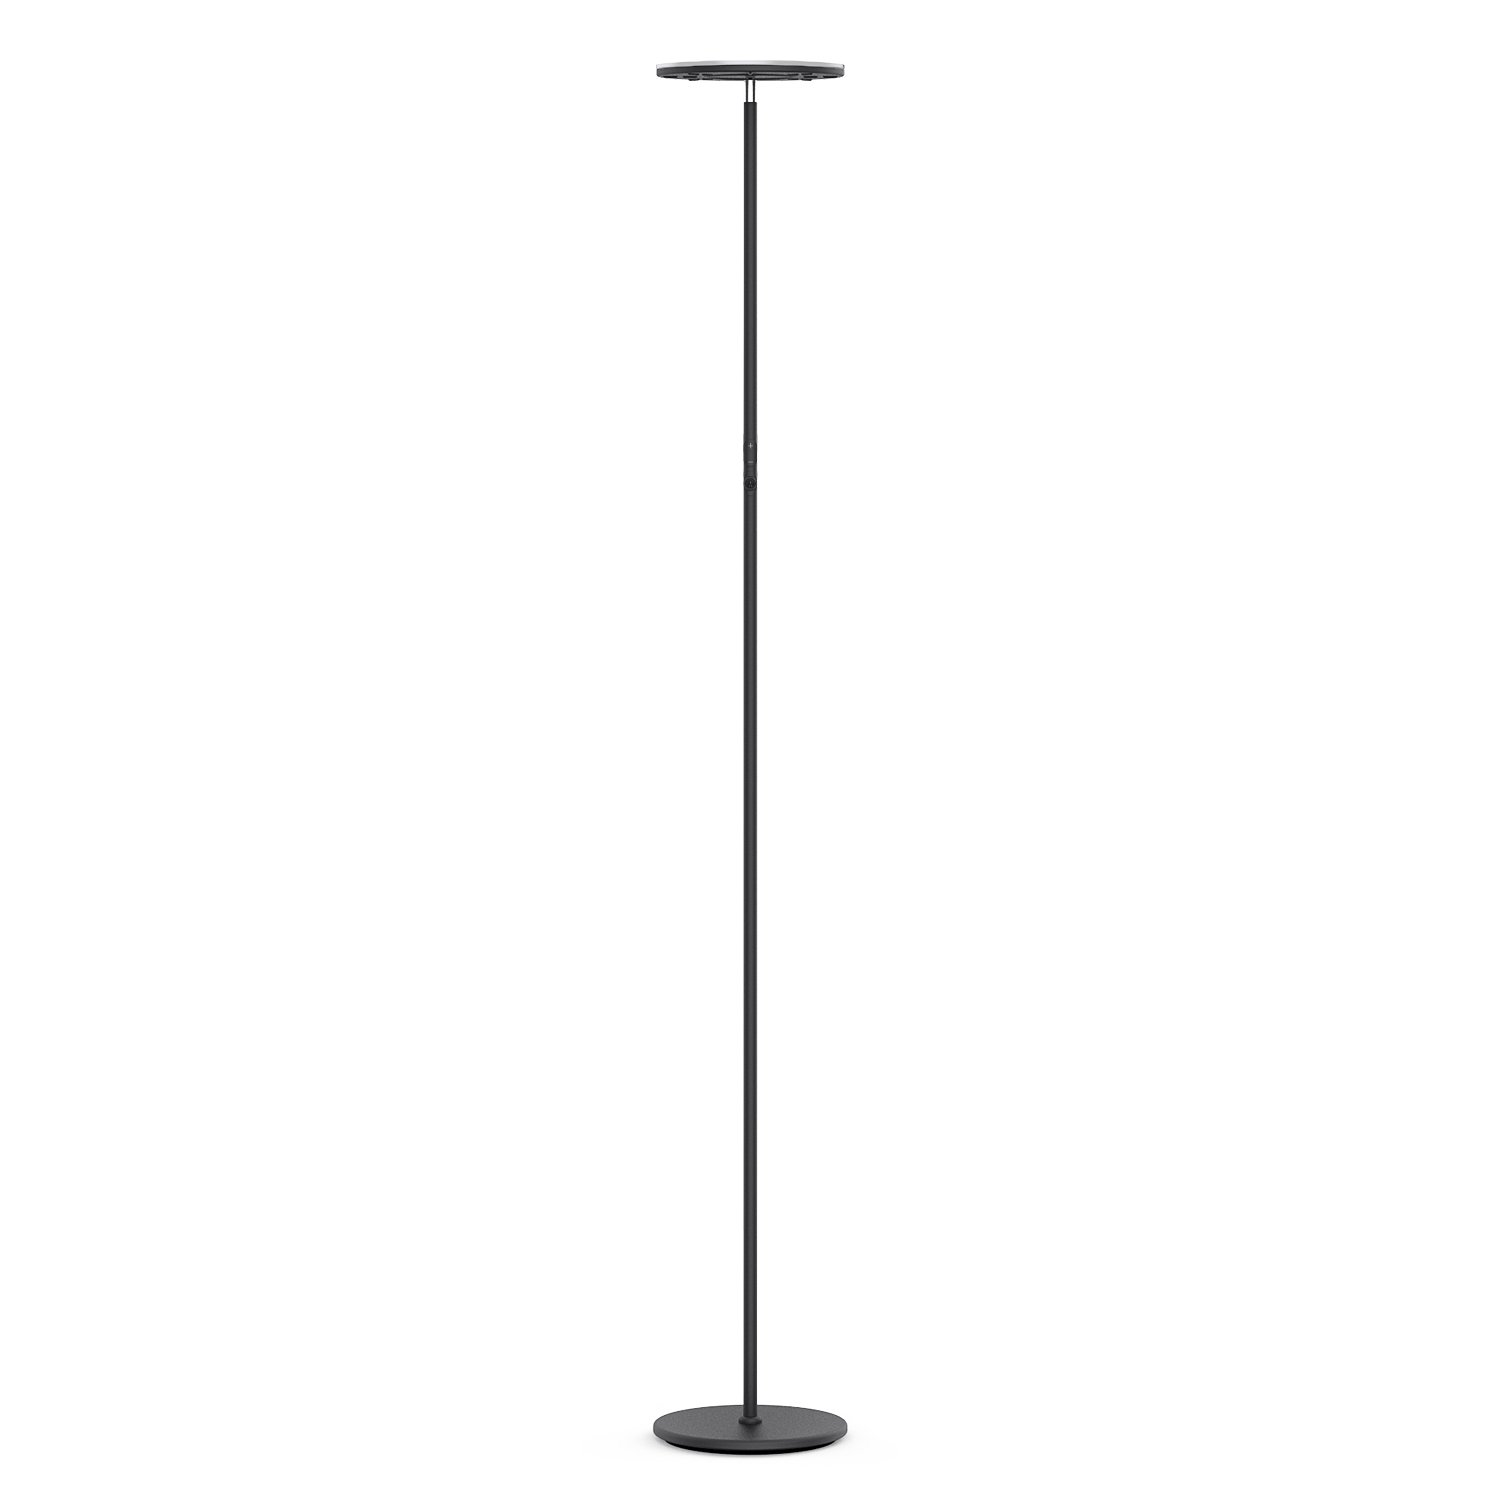 Vacnite LED Torchiere Floor Lamp, Smart-Touch-Dimming, 71-Inch,